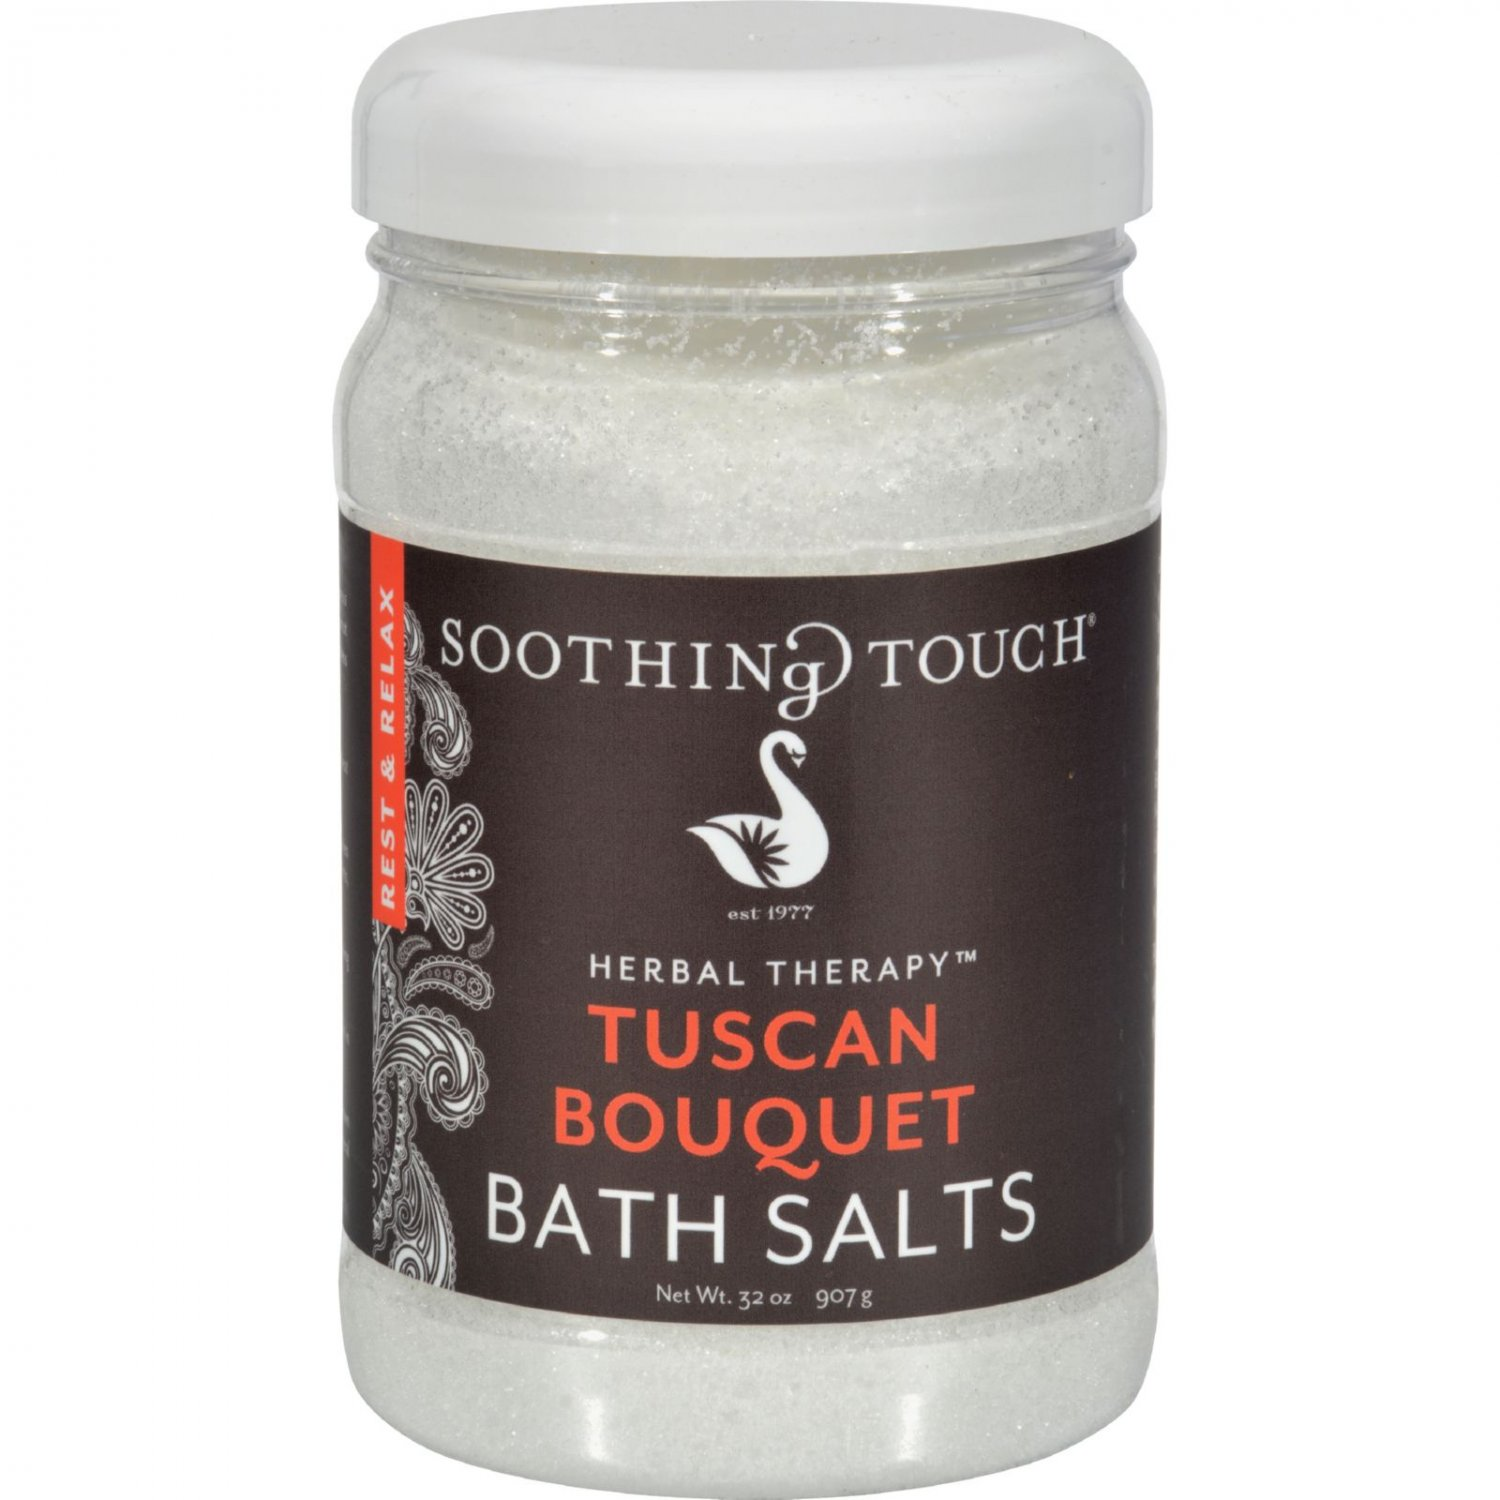 Soothing Touch Bath Salts - Rest and Relax - 32 oz